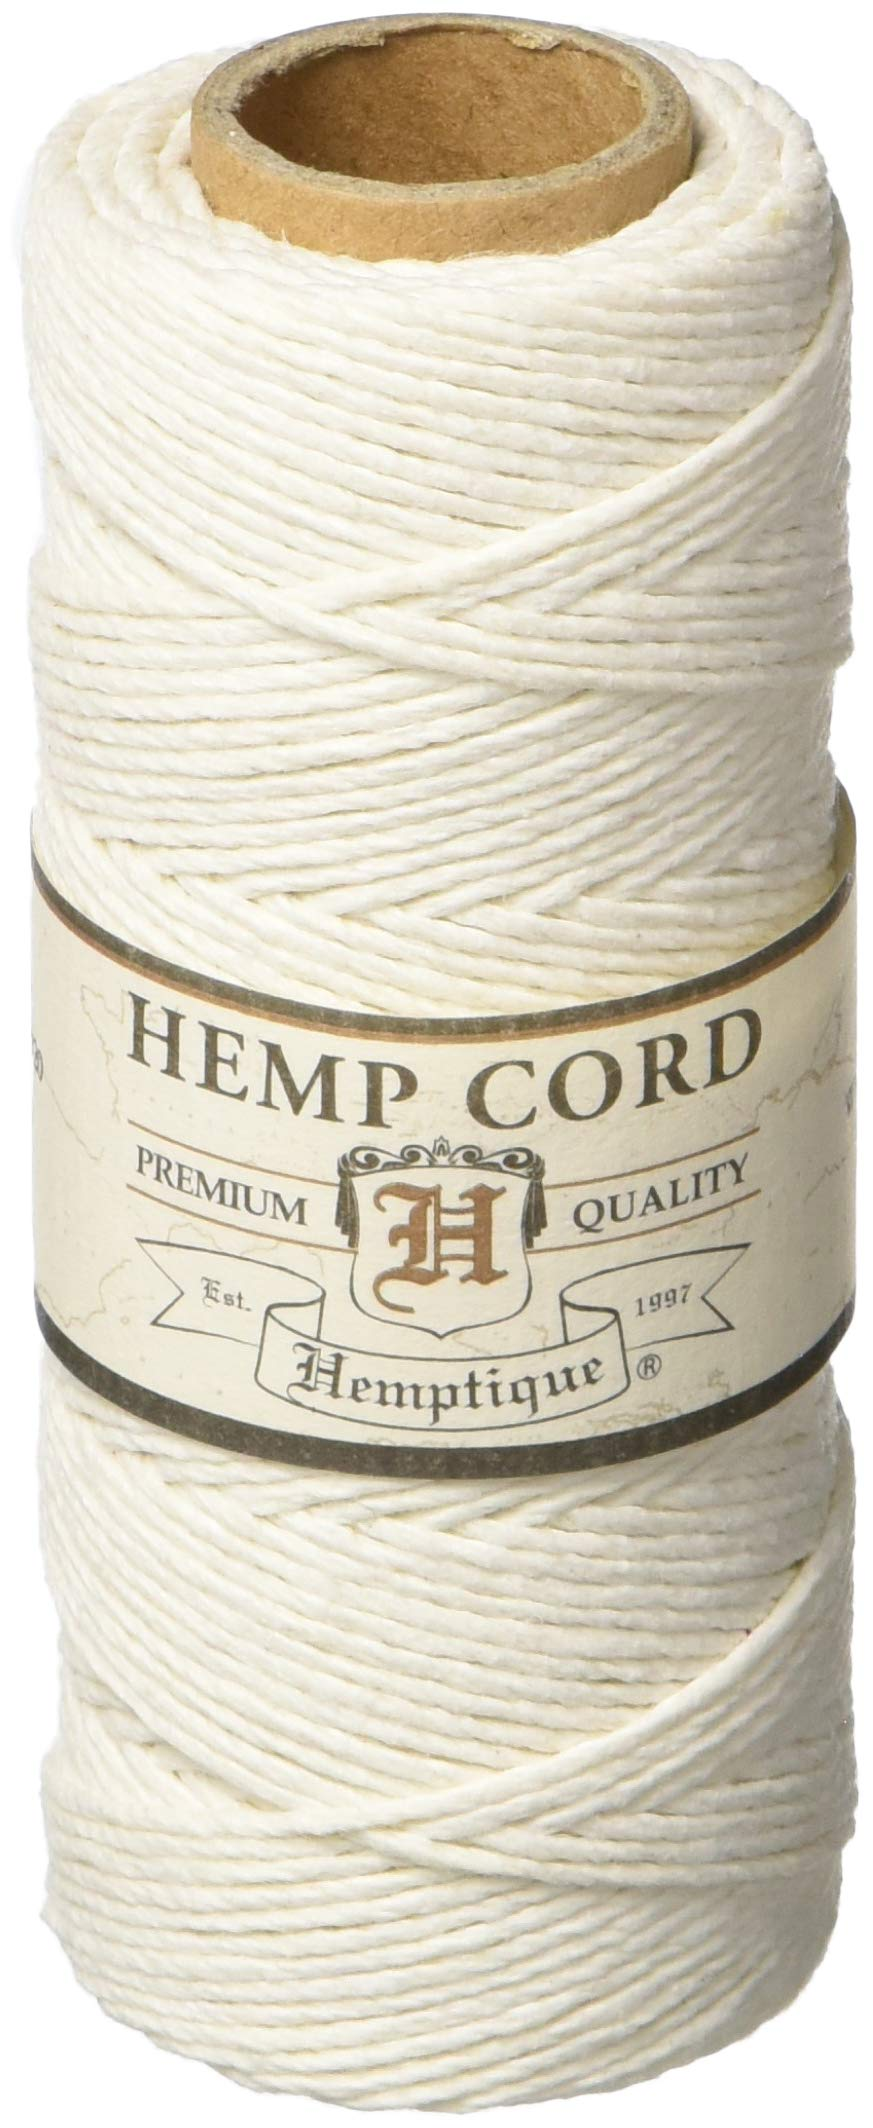 Hemptique 100% Hemp Cord Spool - 62.5 Meter Hemp String - Made with Love - No. 20 ~ 1mm Cord Thread for Jewelry Making, Macrame, Scrapbooking, DIY, & More - White